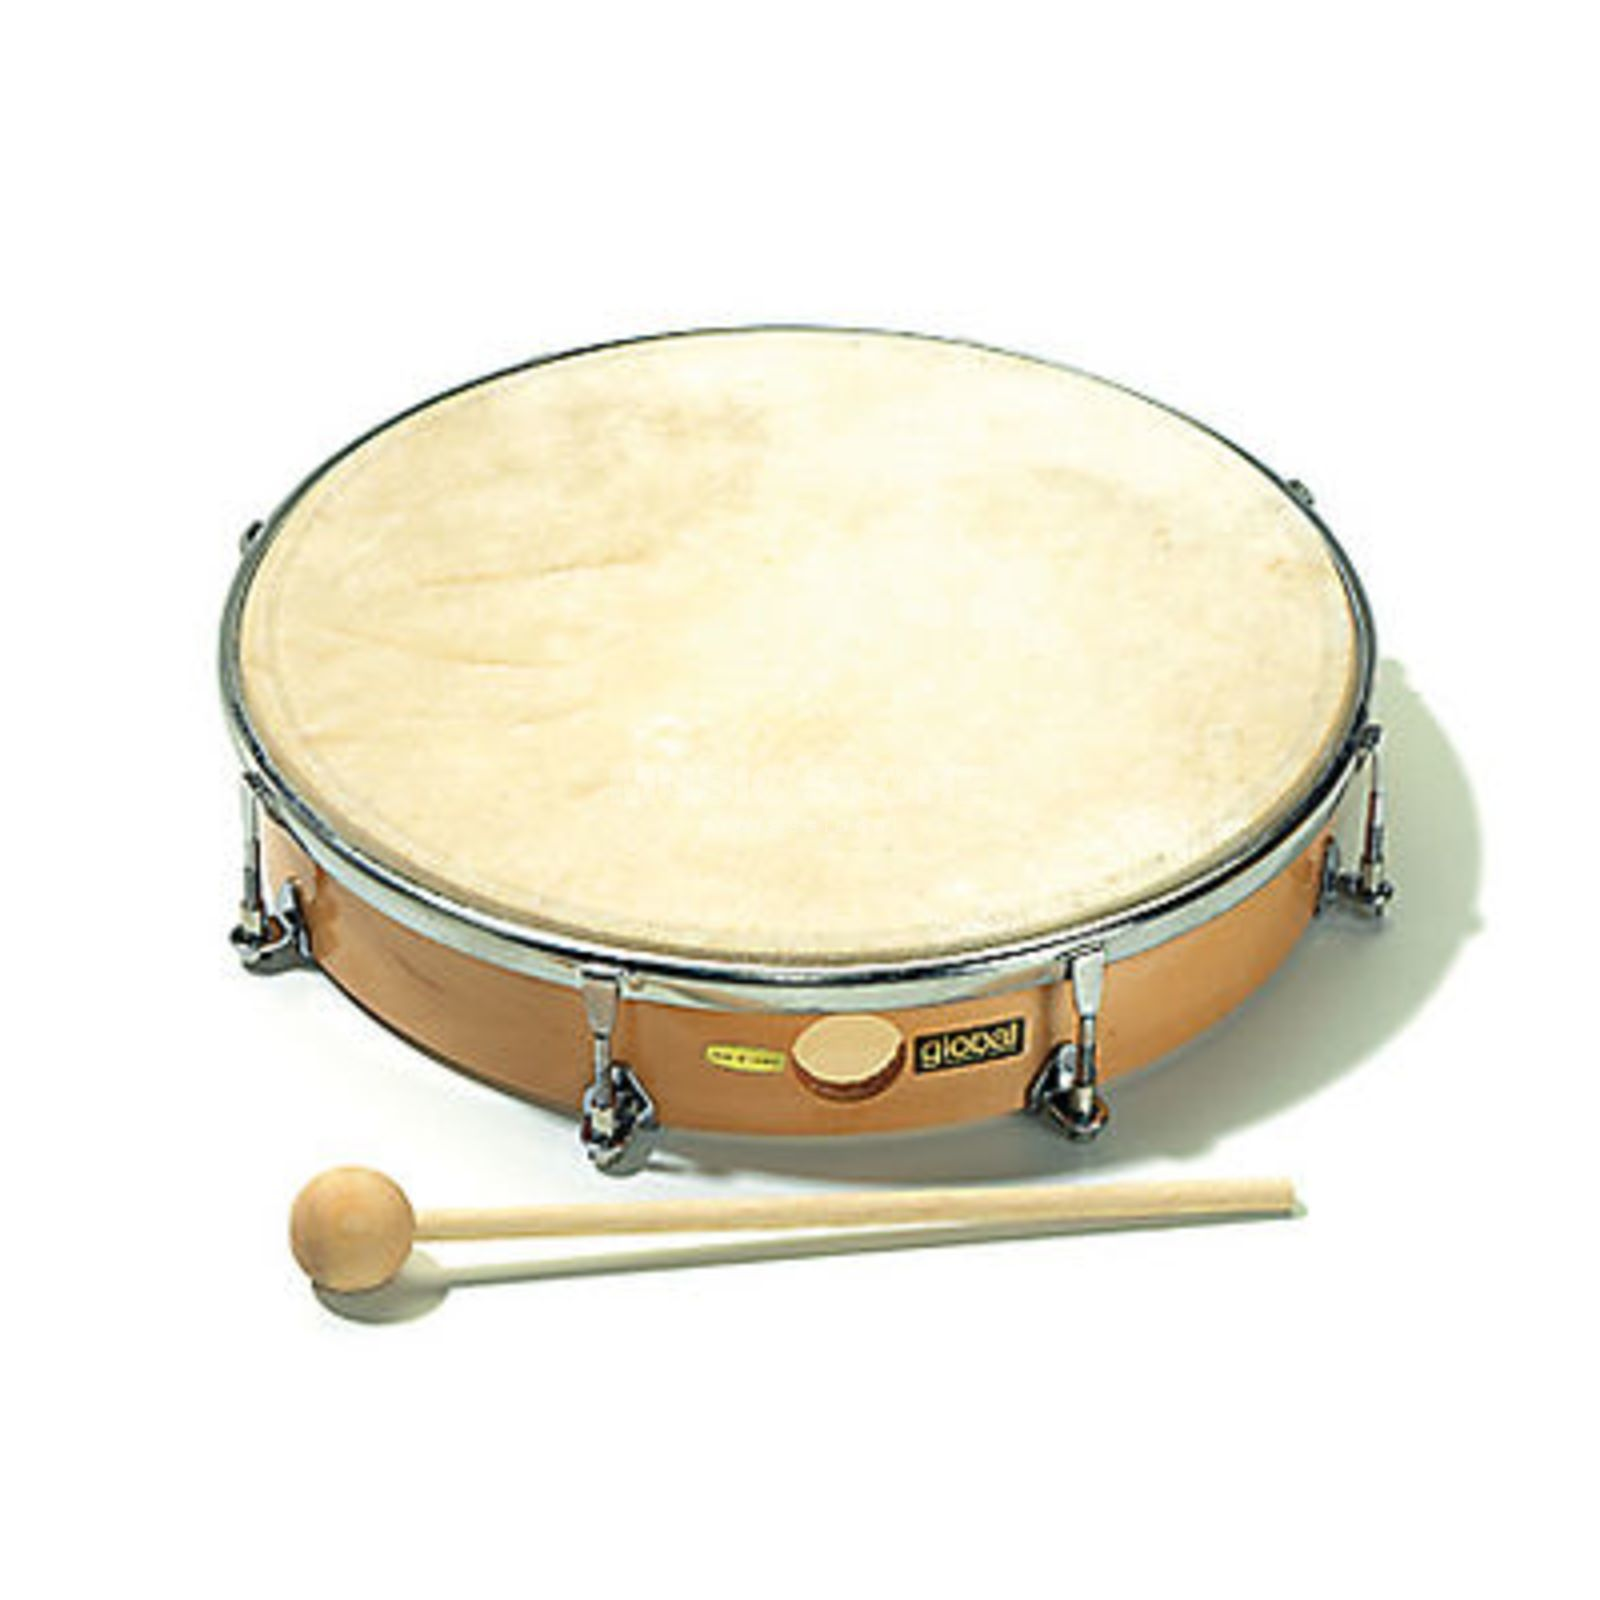 "Sonor Hand Drum CG THD 12 N, 12"", Natural Head Produktbillede"